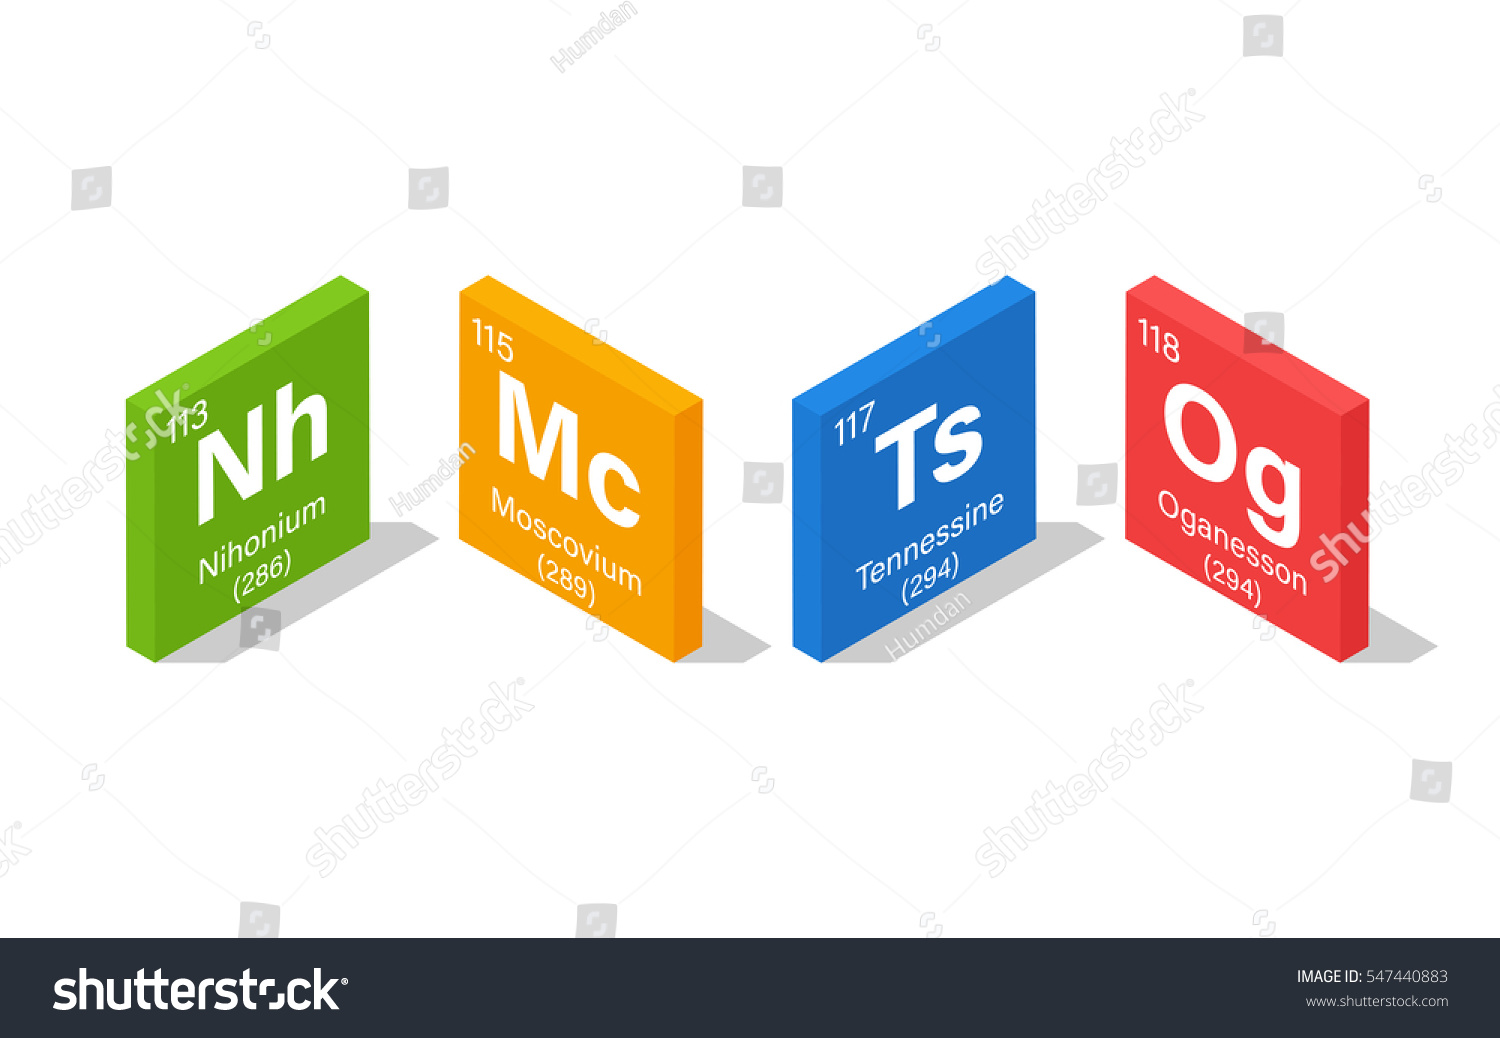 2016 new elements periodic table nihonium stock vector 547440883 2016 new elements in the periodic table nihonium moscovium tennessine and oganesson gamestrikefo Image collections